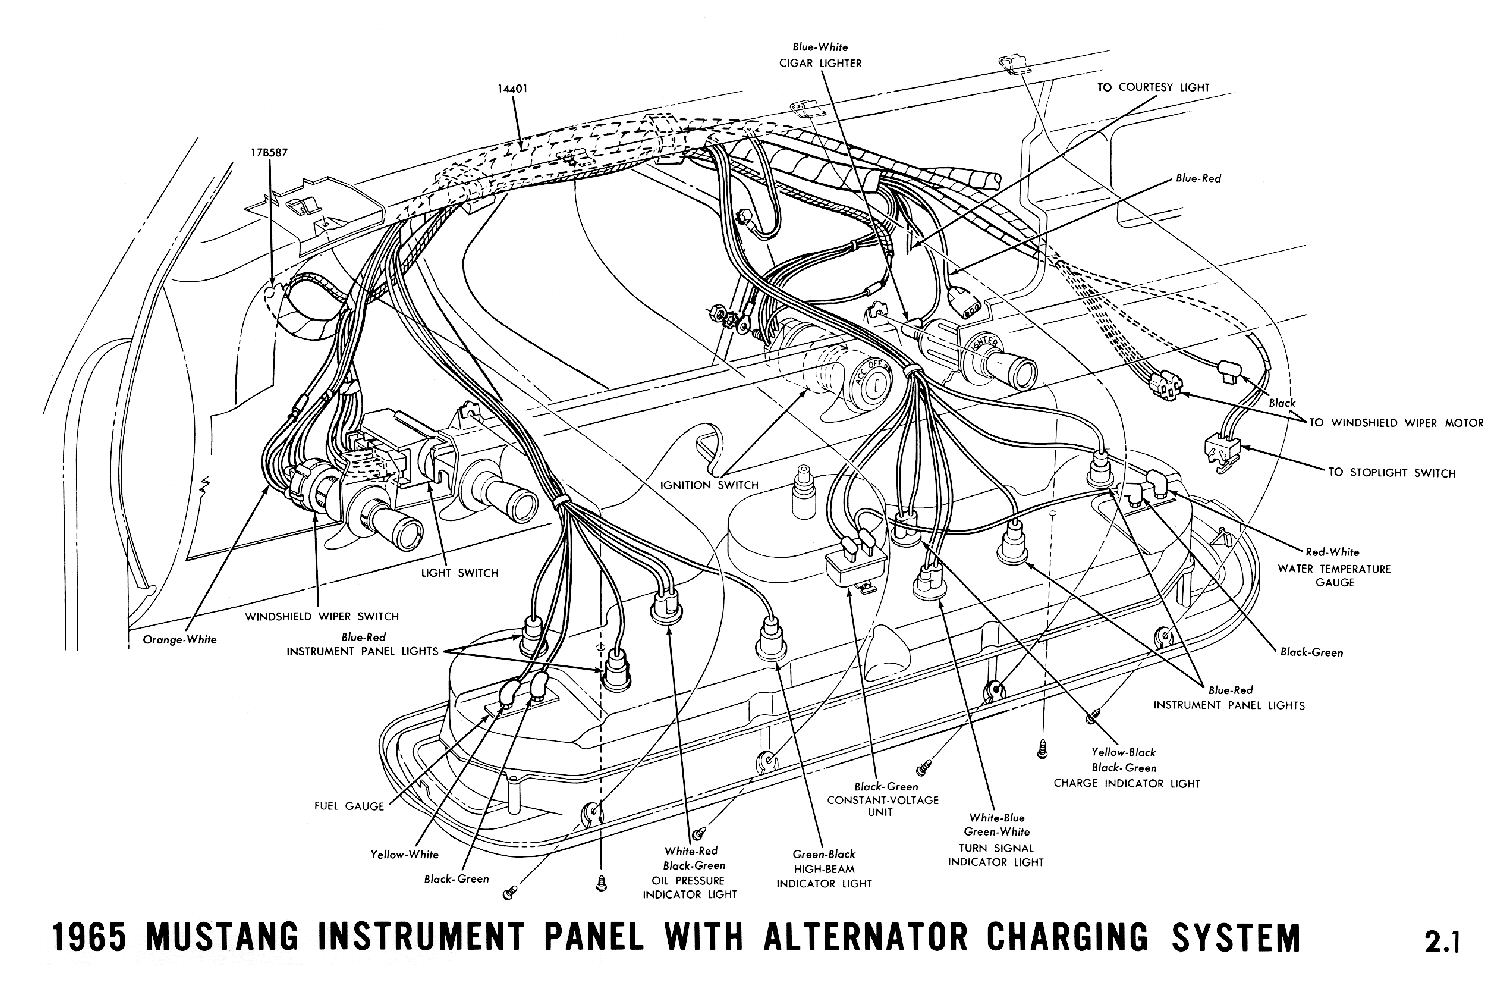 1965 Mustang Wiring Diagrams - Average Joe Restoration on rear seat, rear drive shaft, rear lights, rear body harness,